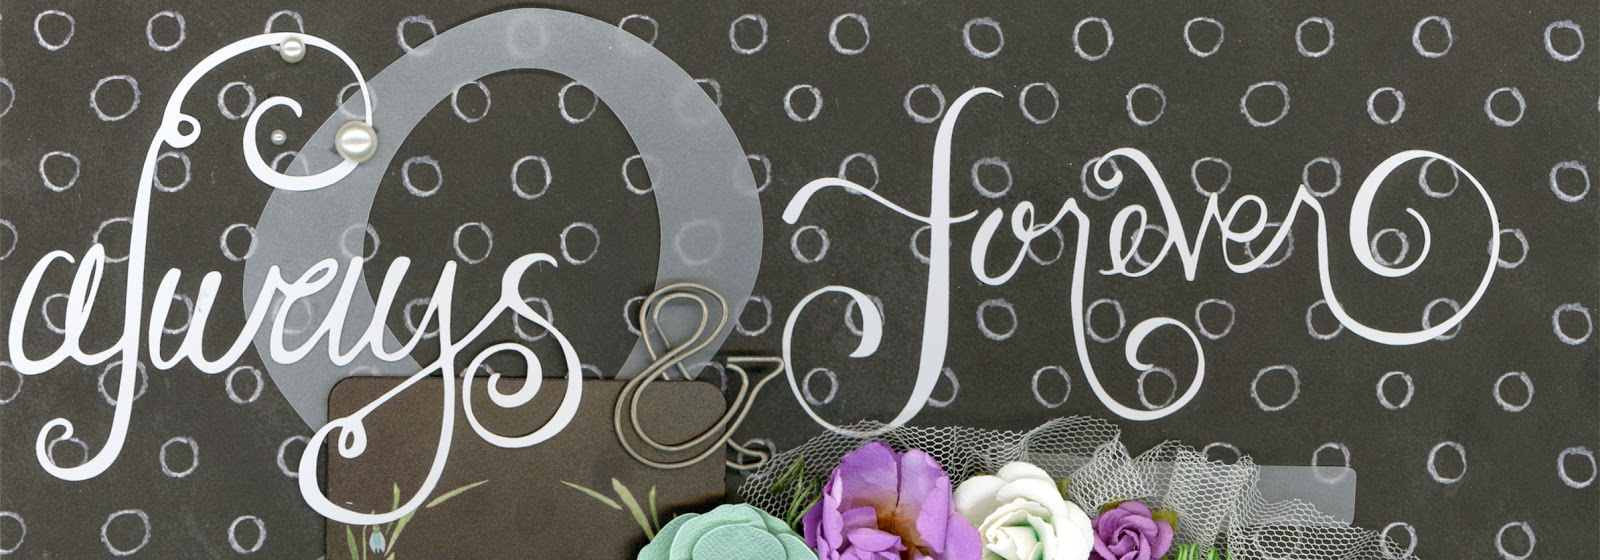 scrapbooking, custom scrapbook, wedding, love, ampersand, die cut, tulle, flowers, poppies, roses, paperclip, chalkboard, Prima Marketing, Maya Road